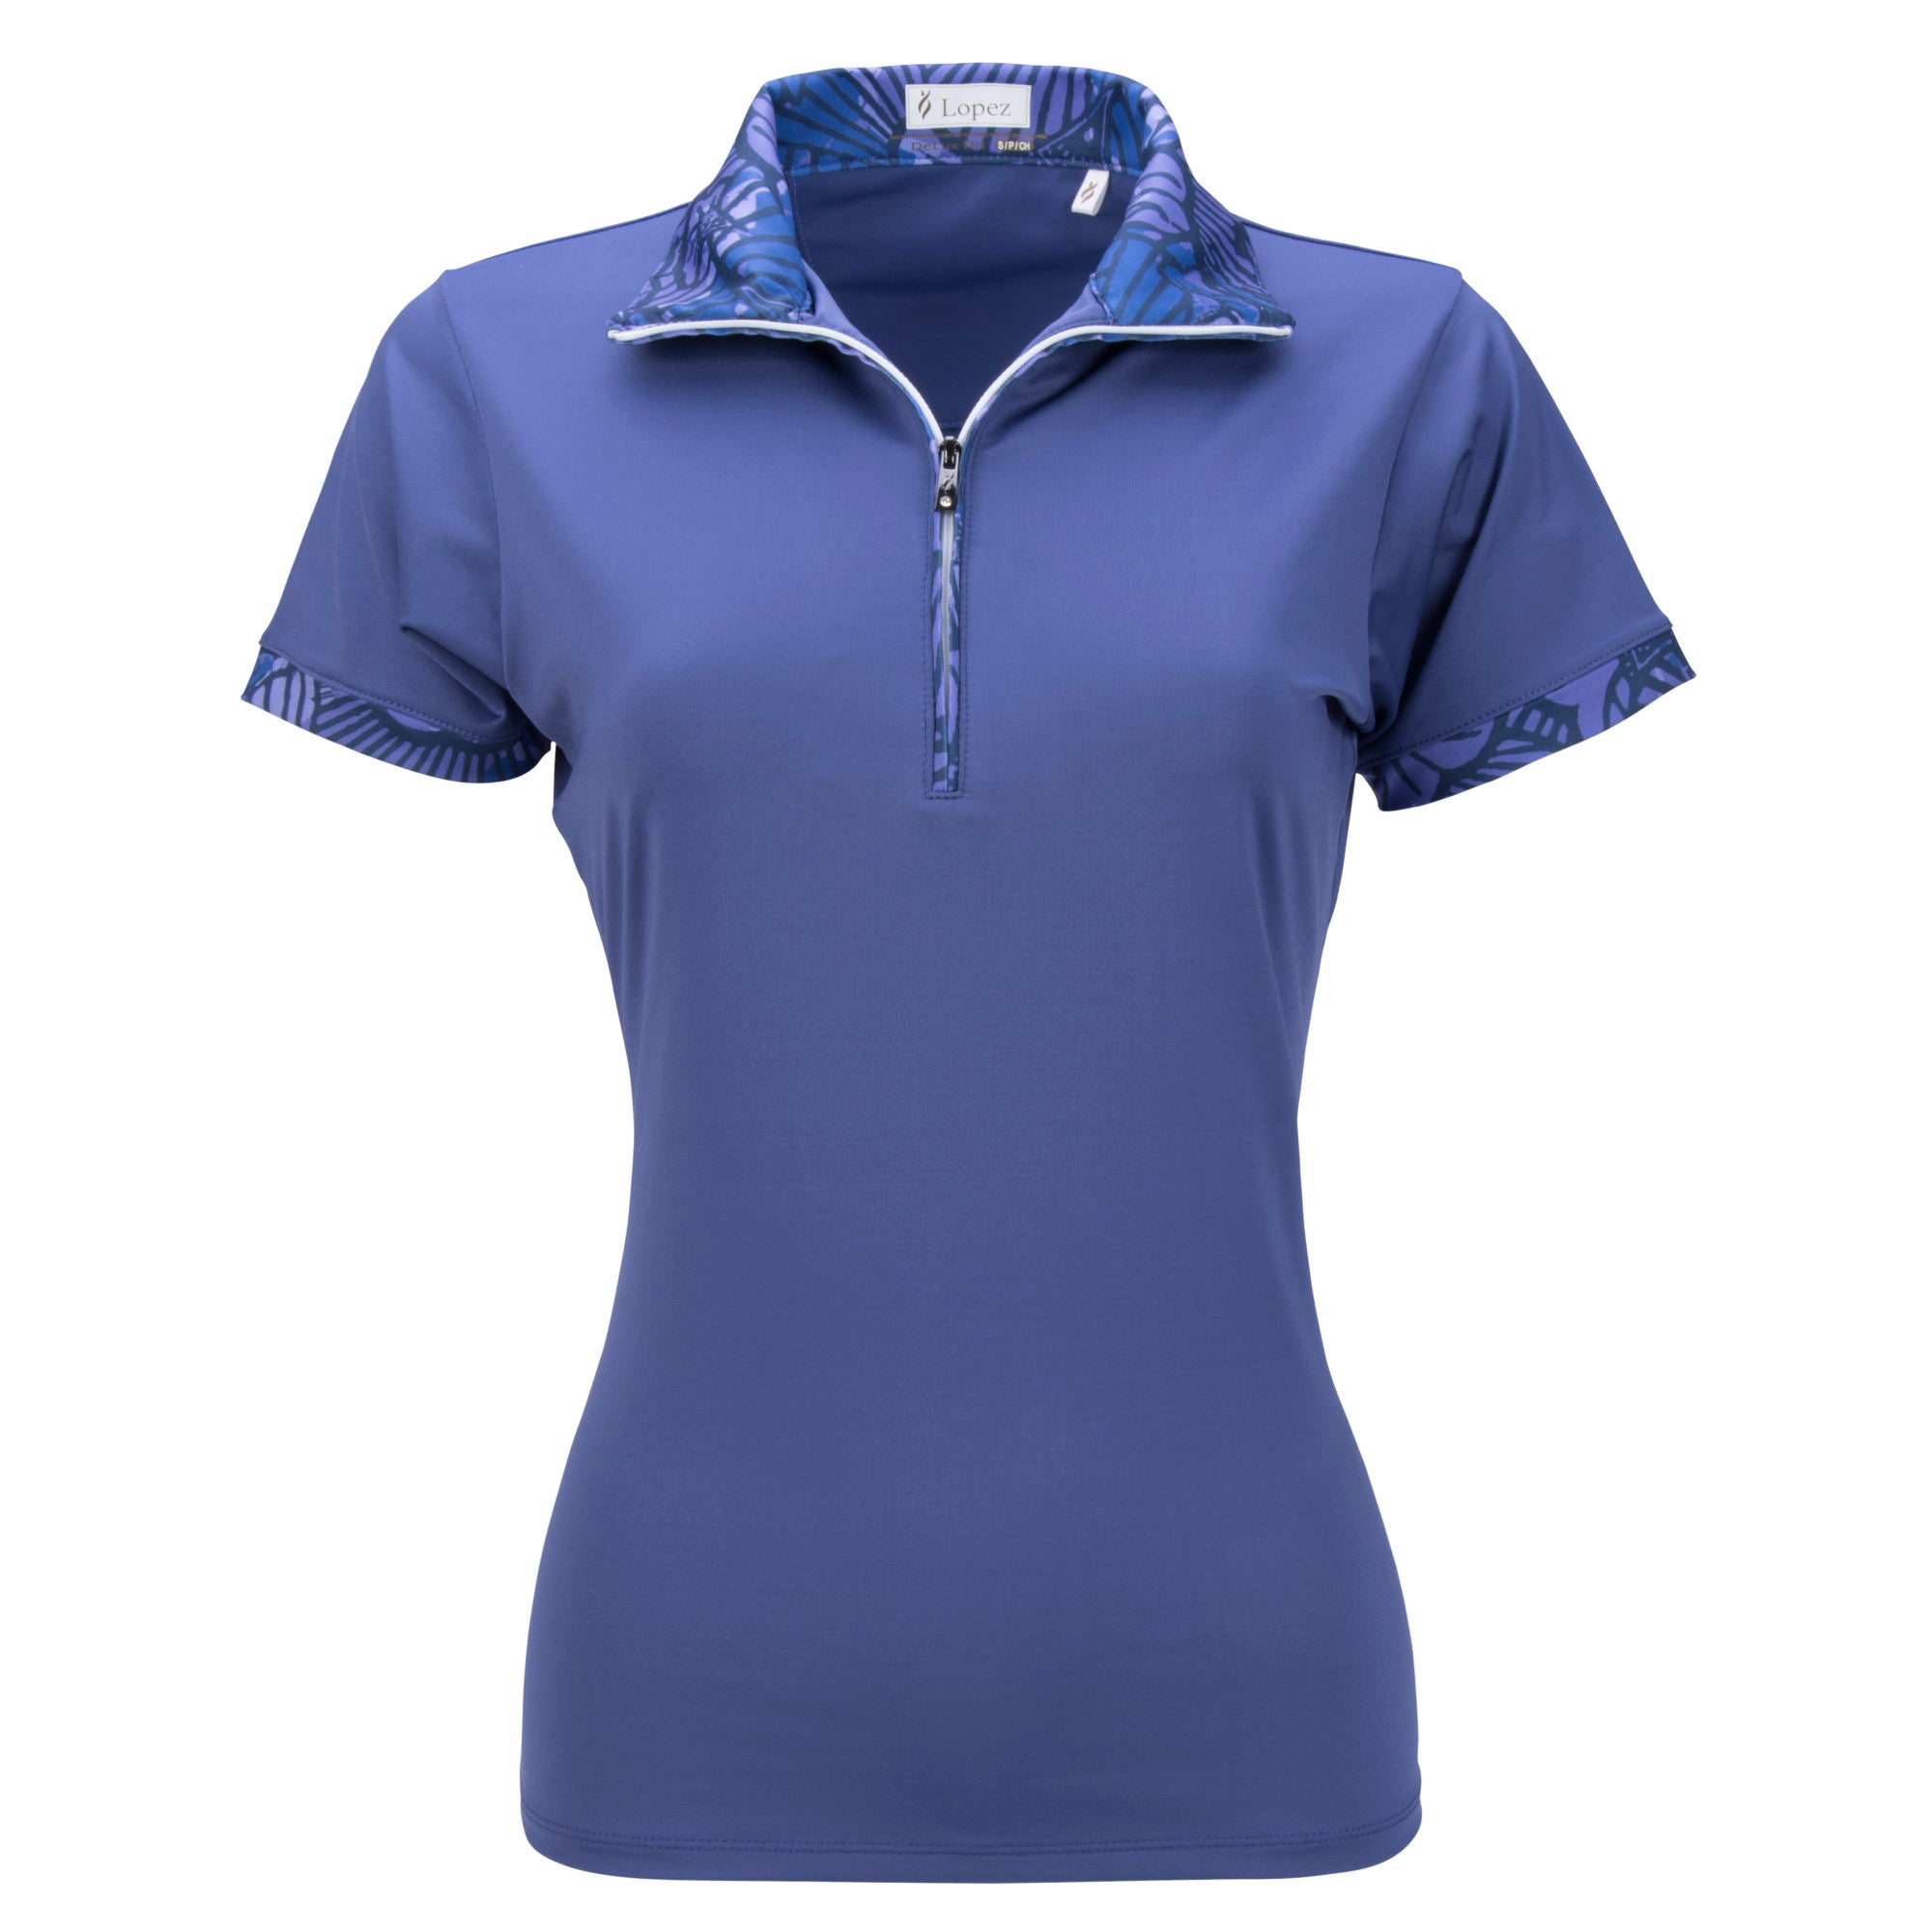 Nancy Lopez Fever Short Sleeve Polo Plus Midnight Multi